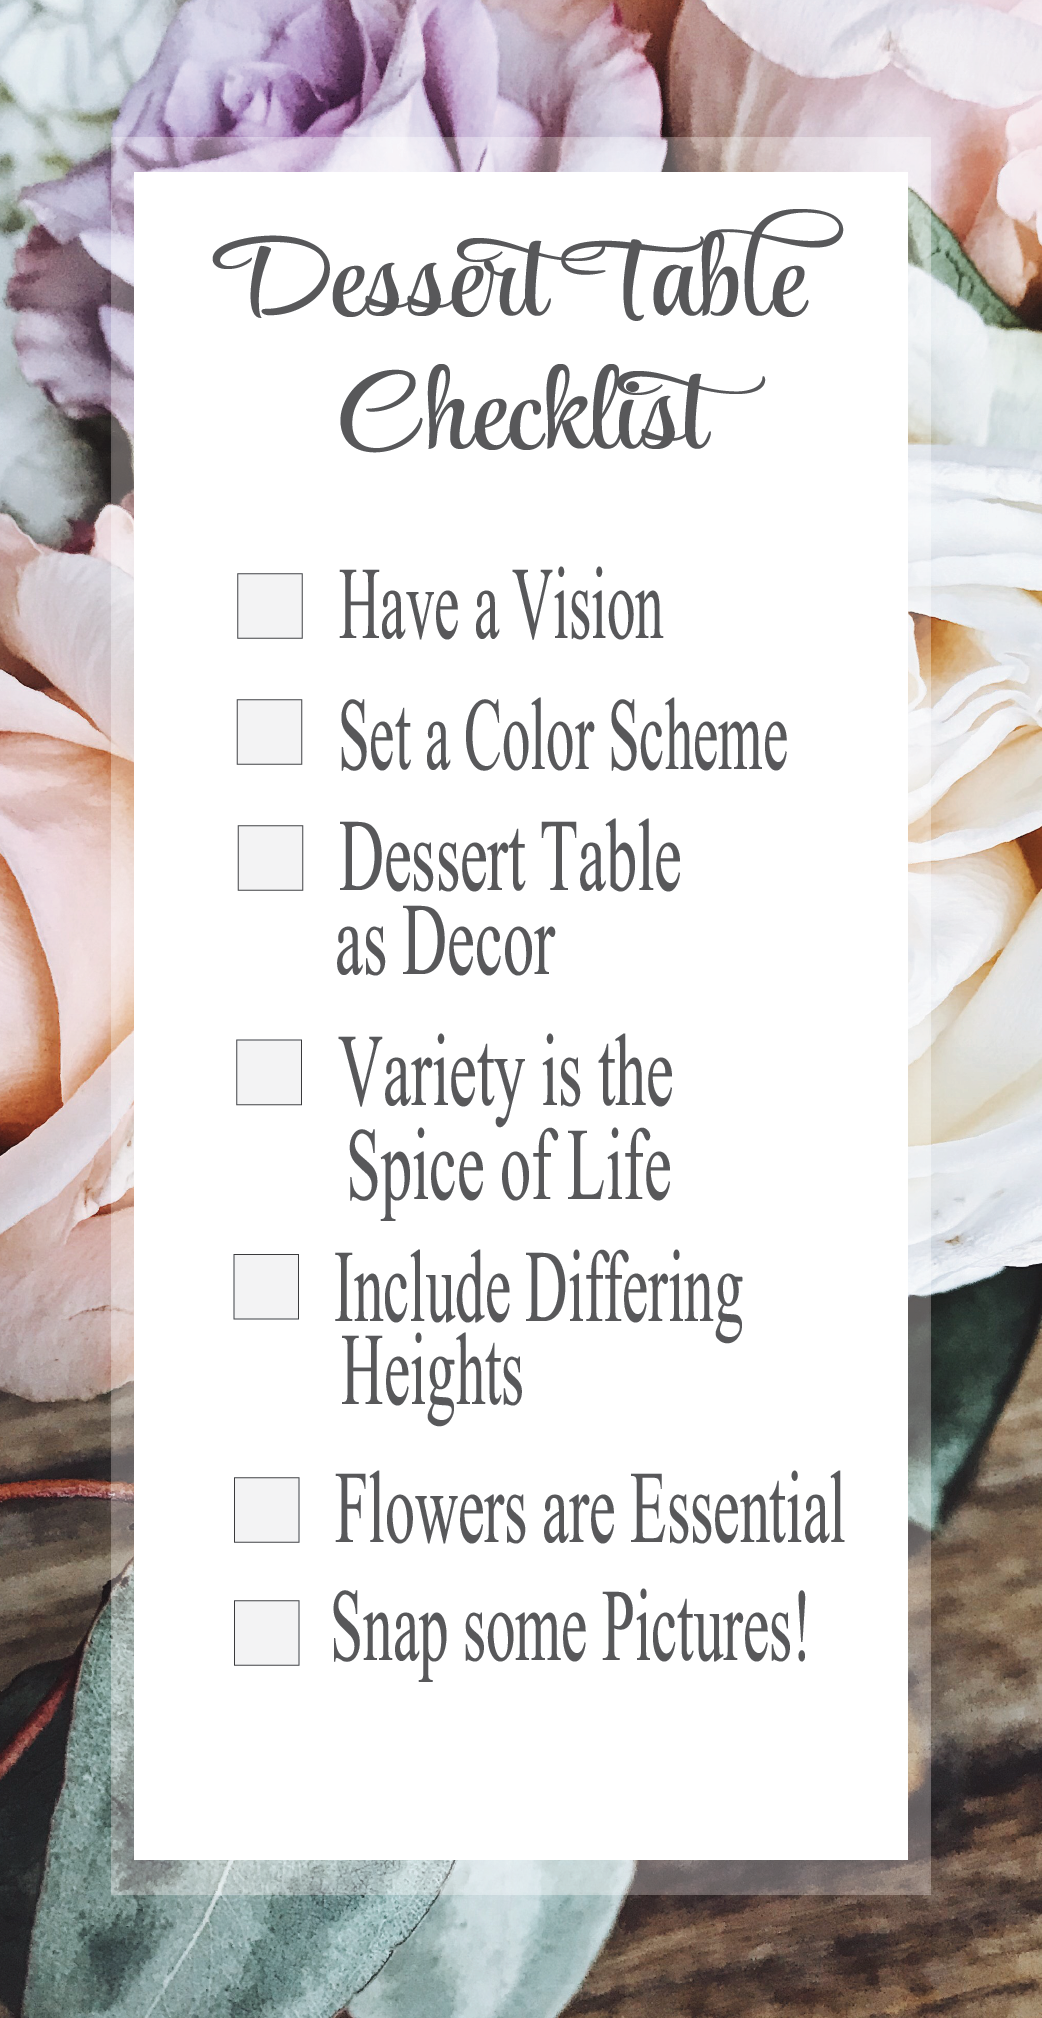 Dessert Table Checklist